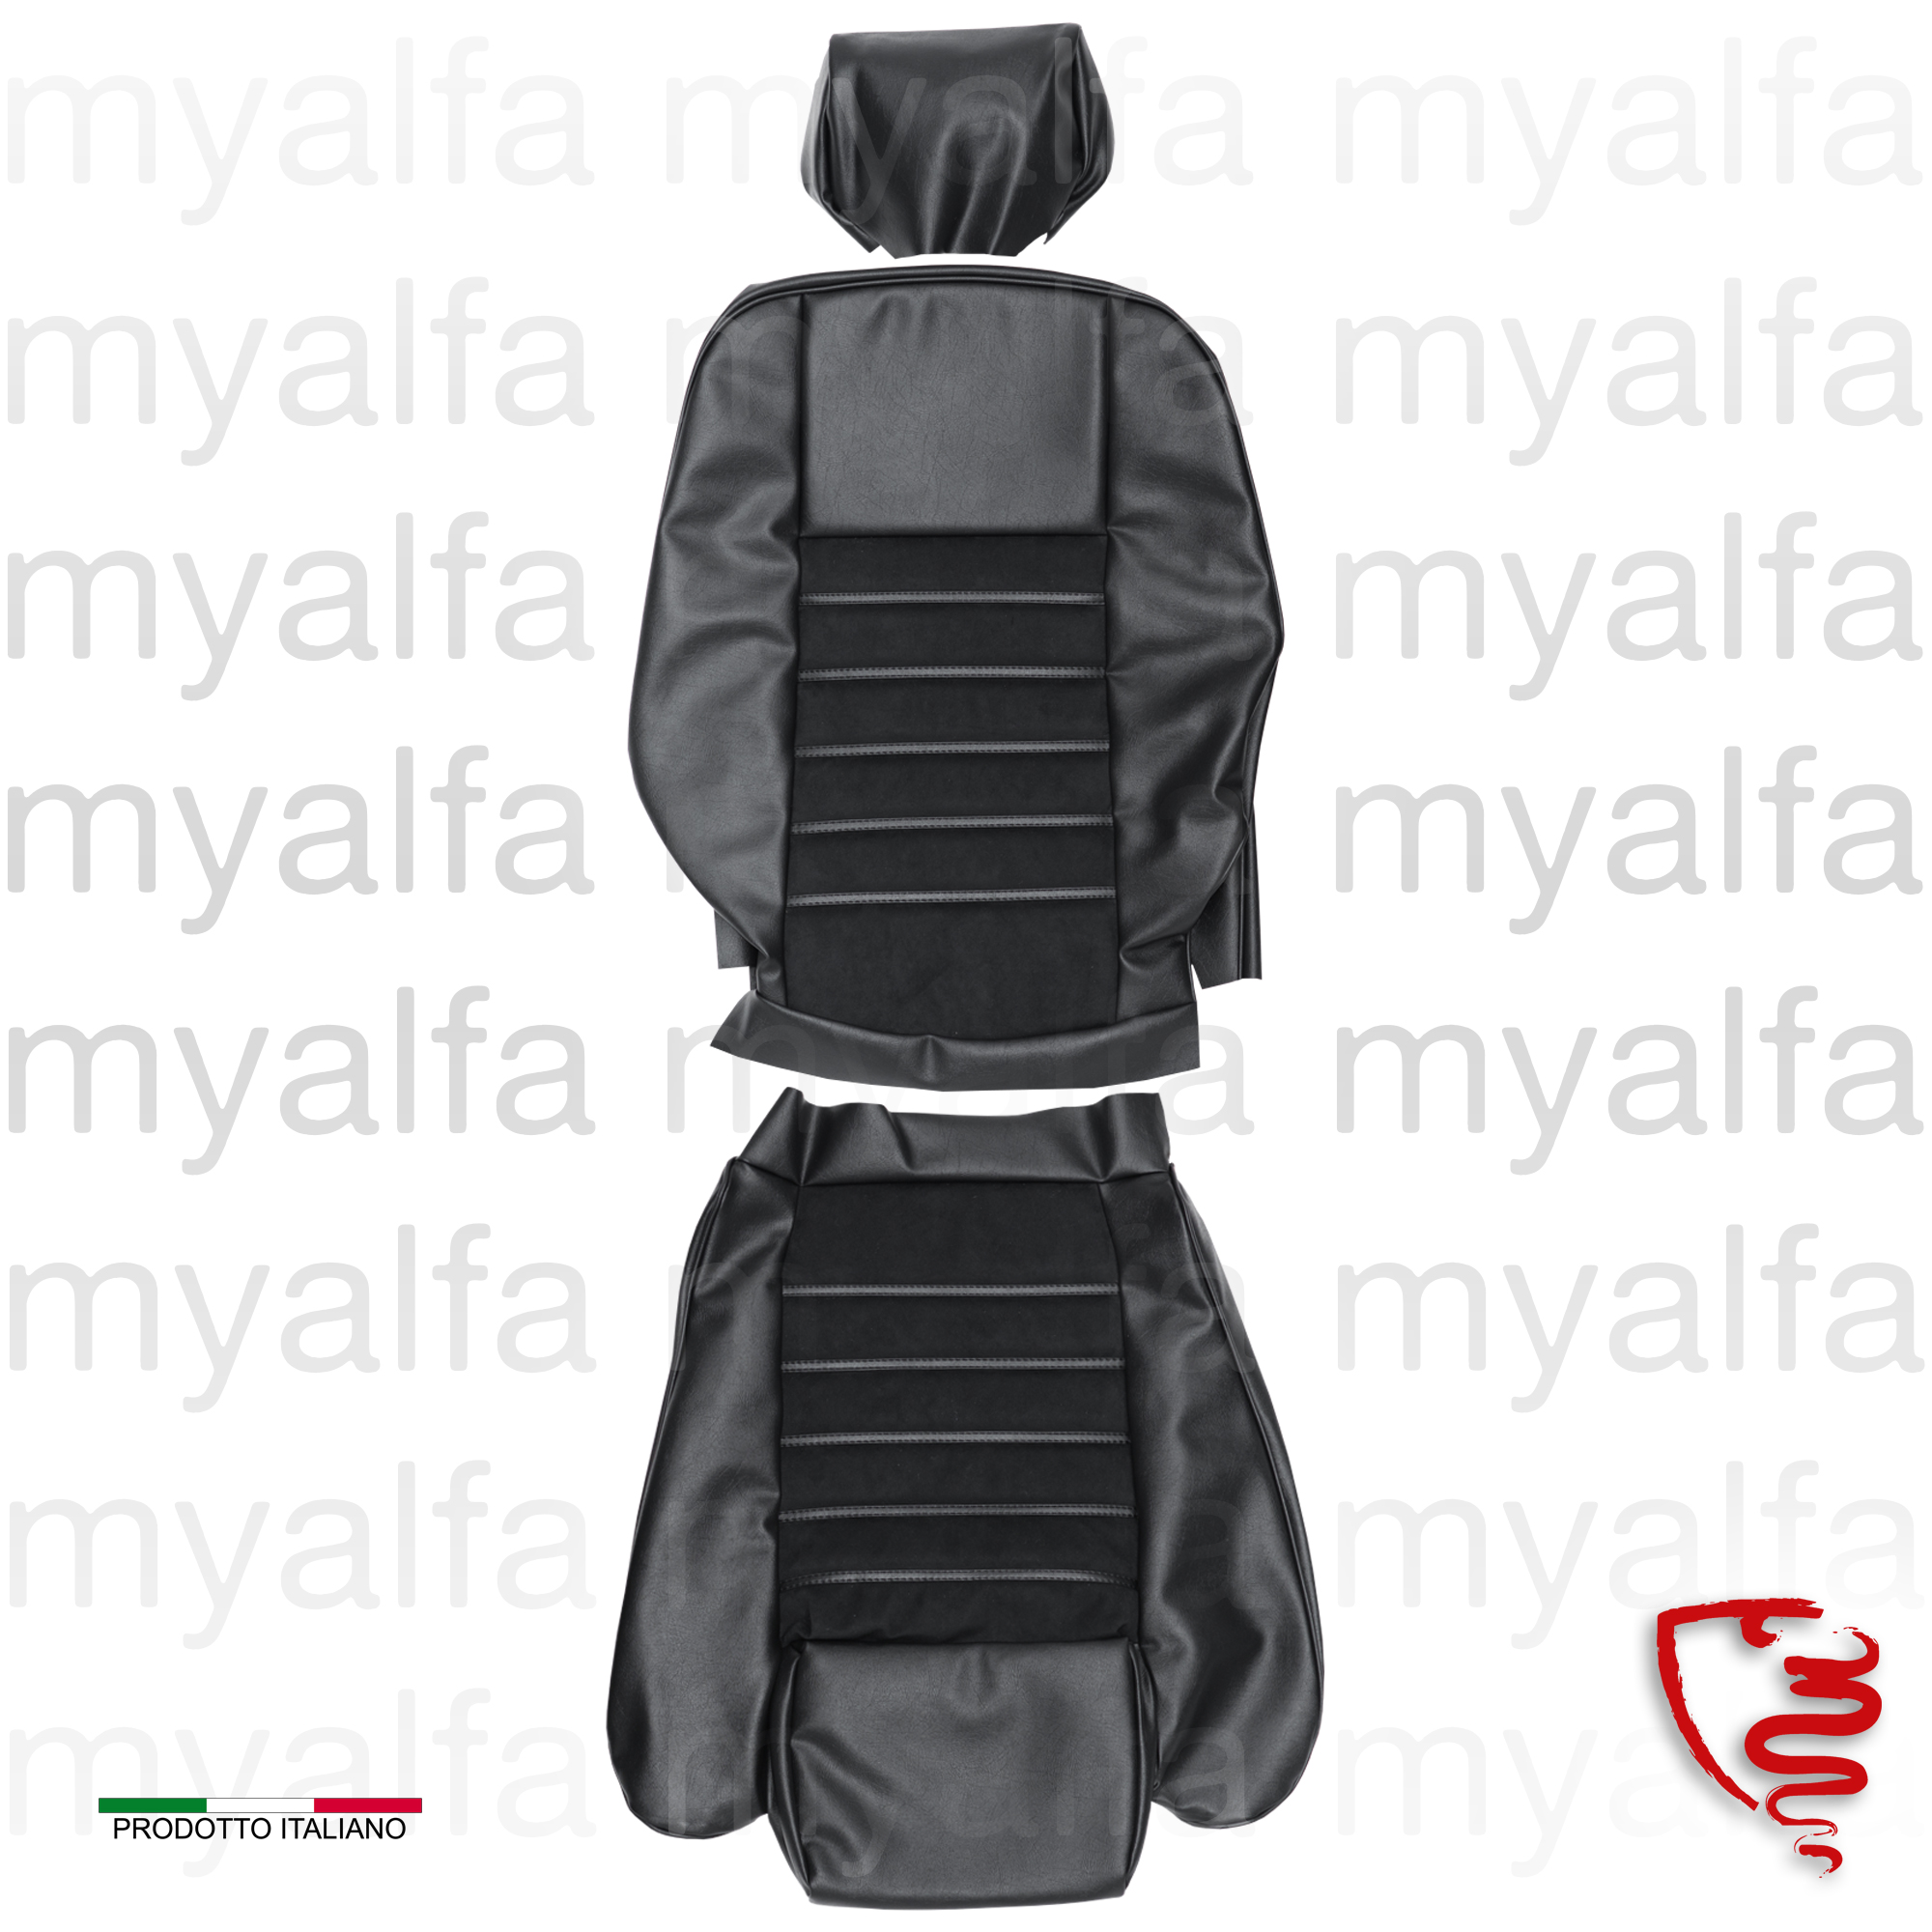 Spider seat cover 1990-93 Black Alcantara / Skay for 105/115, Spider, Interior, Seats, Seat covers